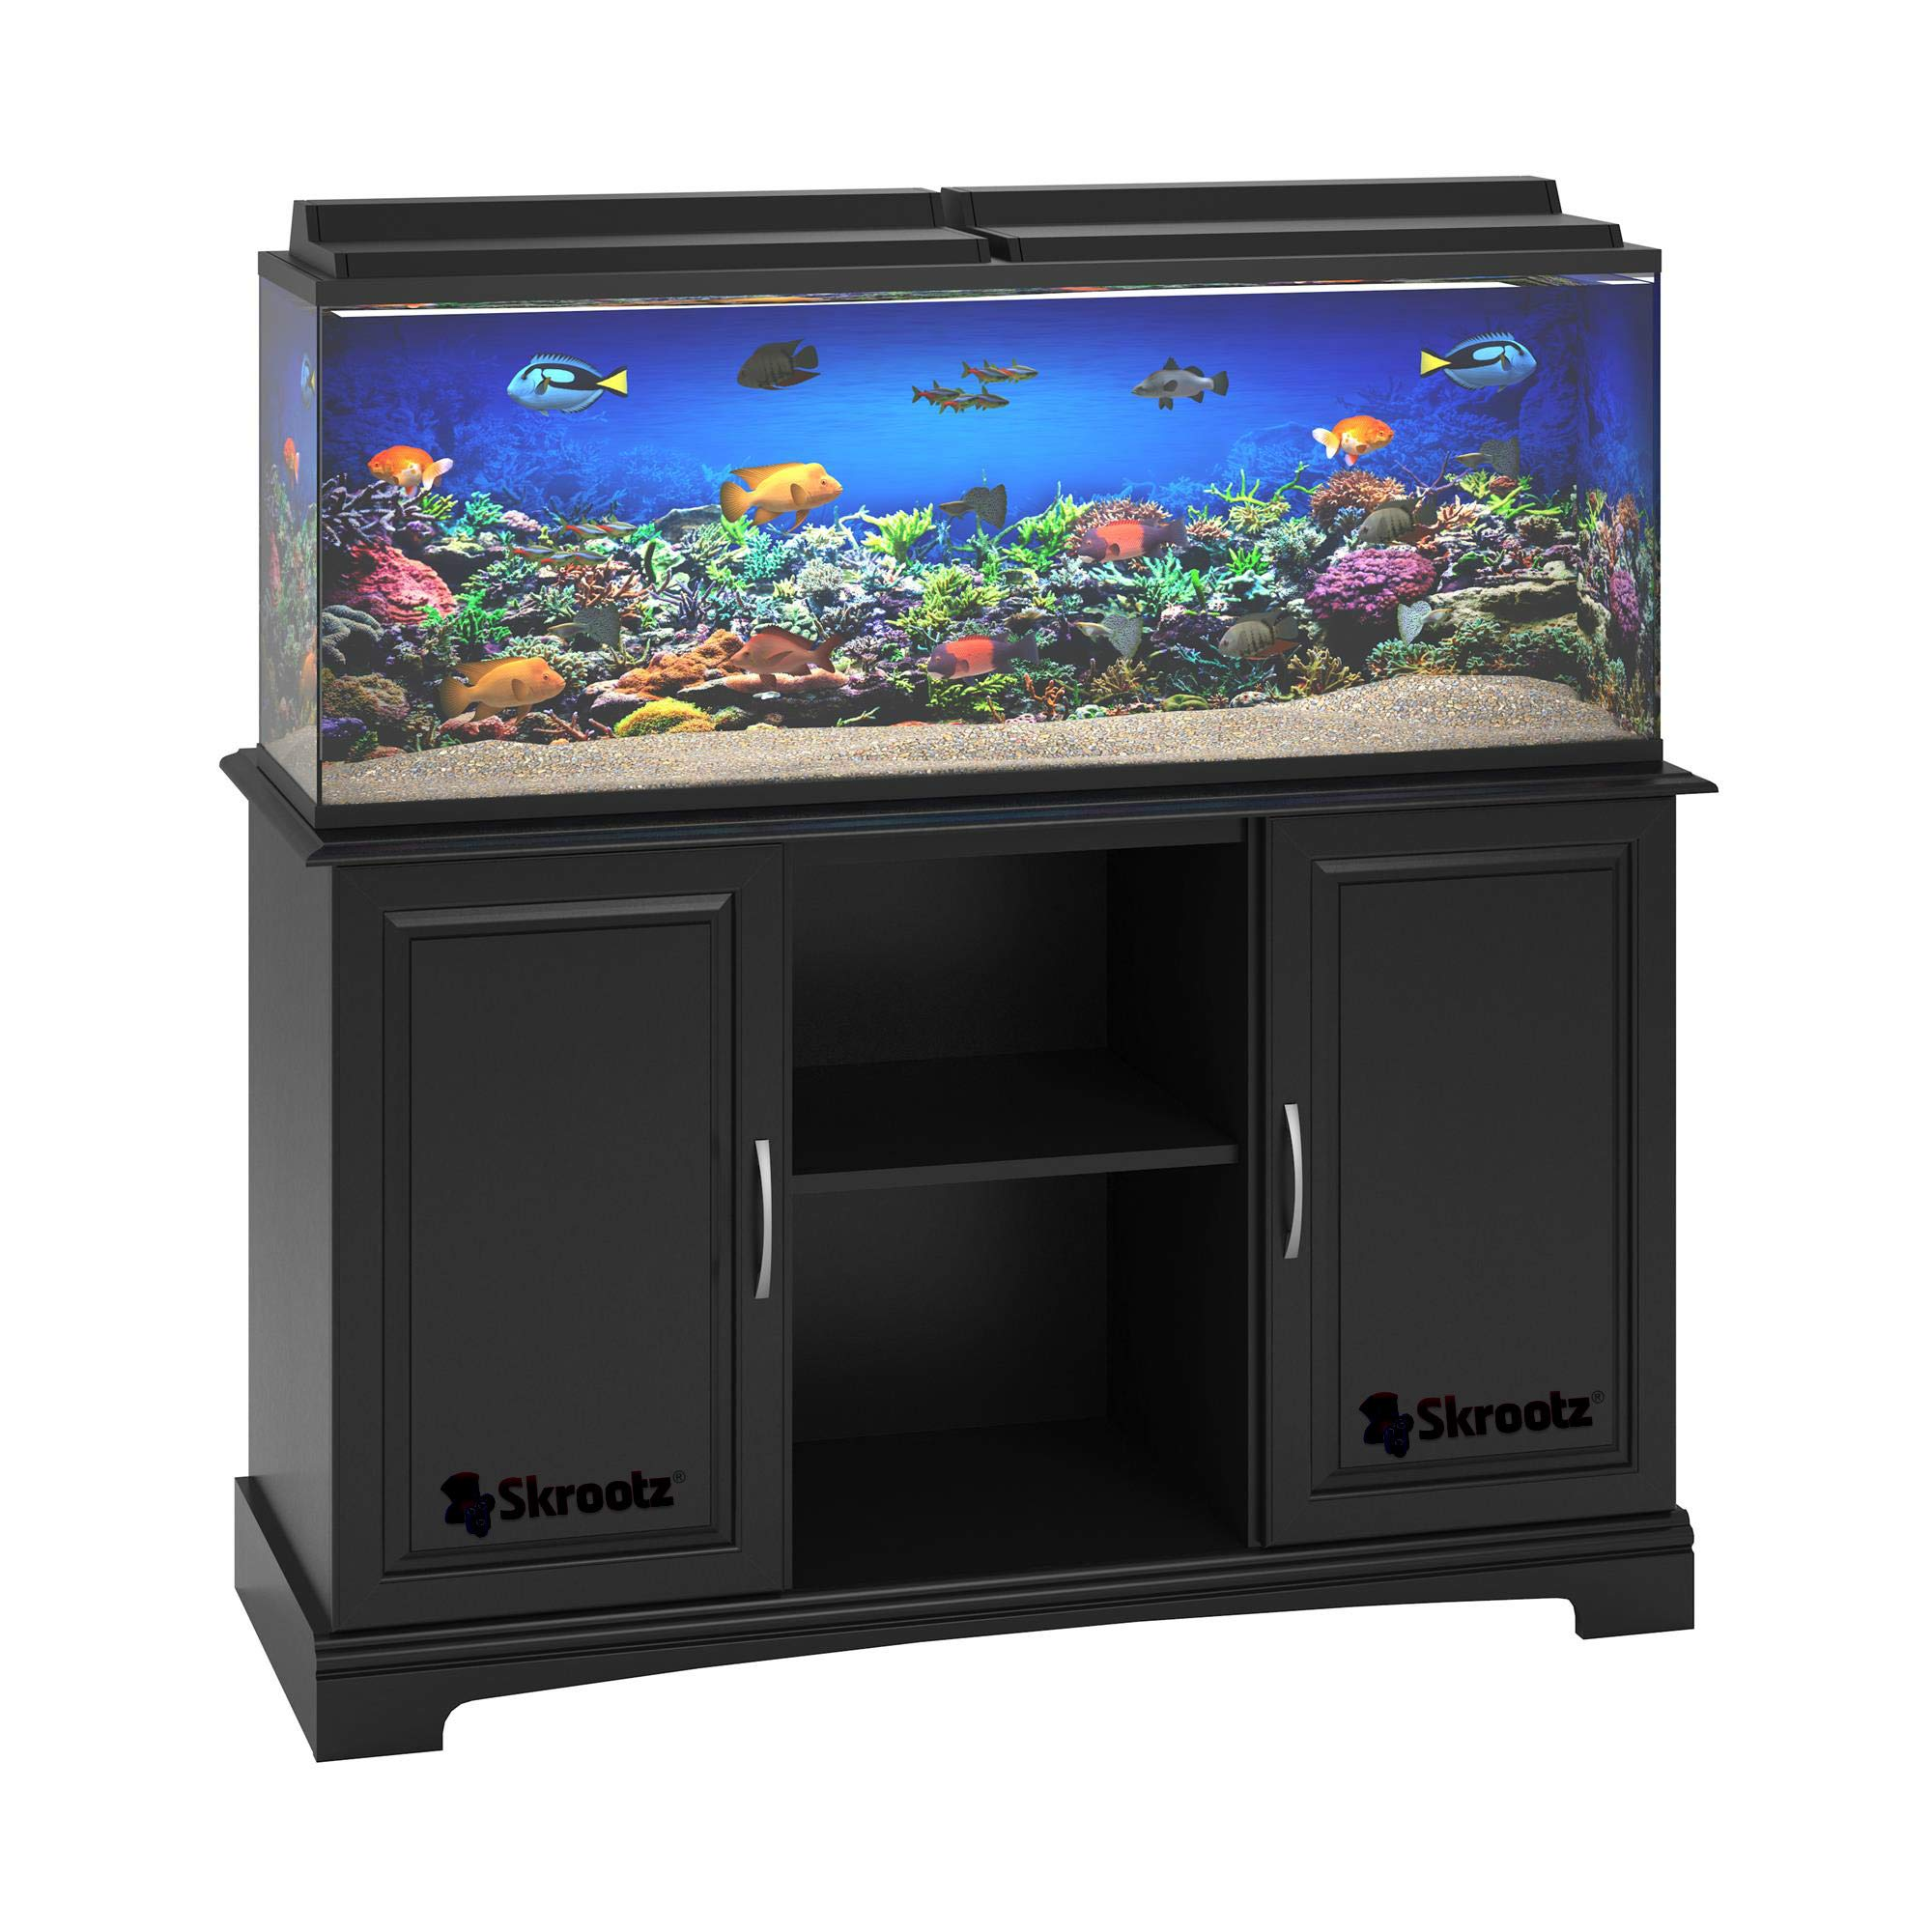 Skrootz – Black 55 Gallon Aquarium Stand Great for 50-75 Gallon Tanks Made of Laminated Particleboard and MDF